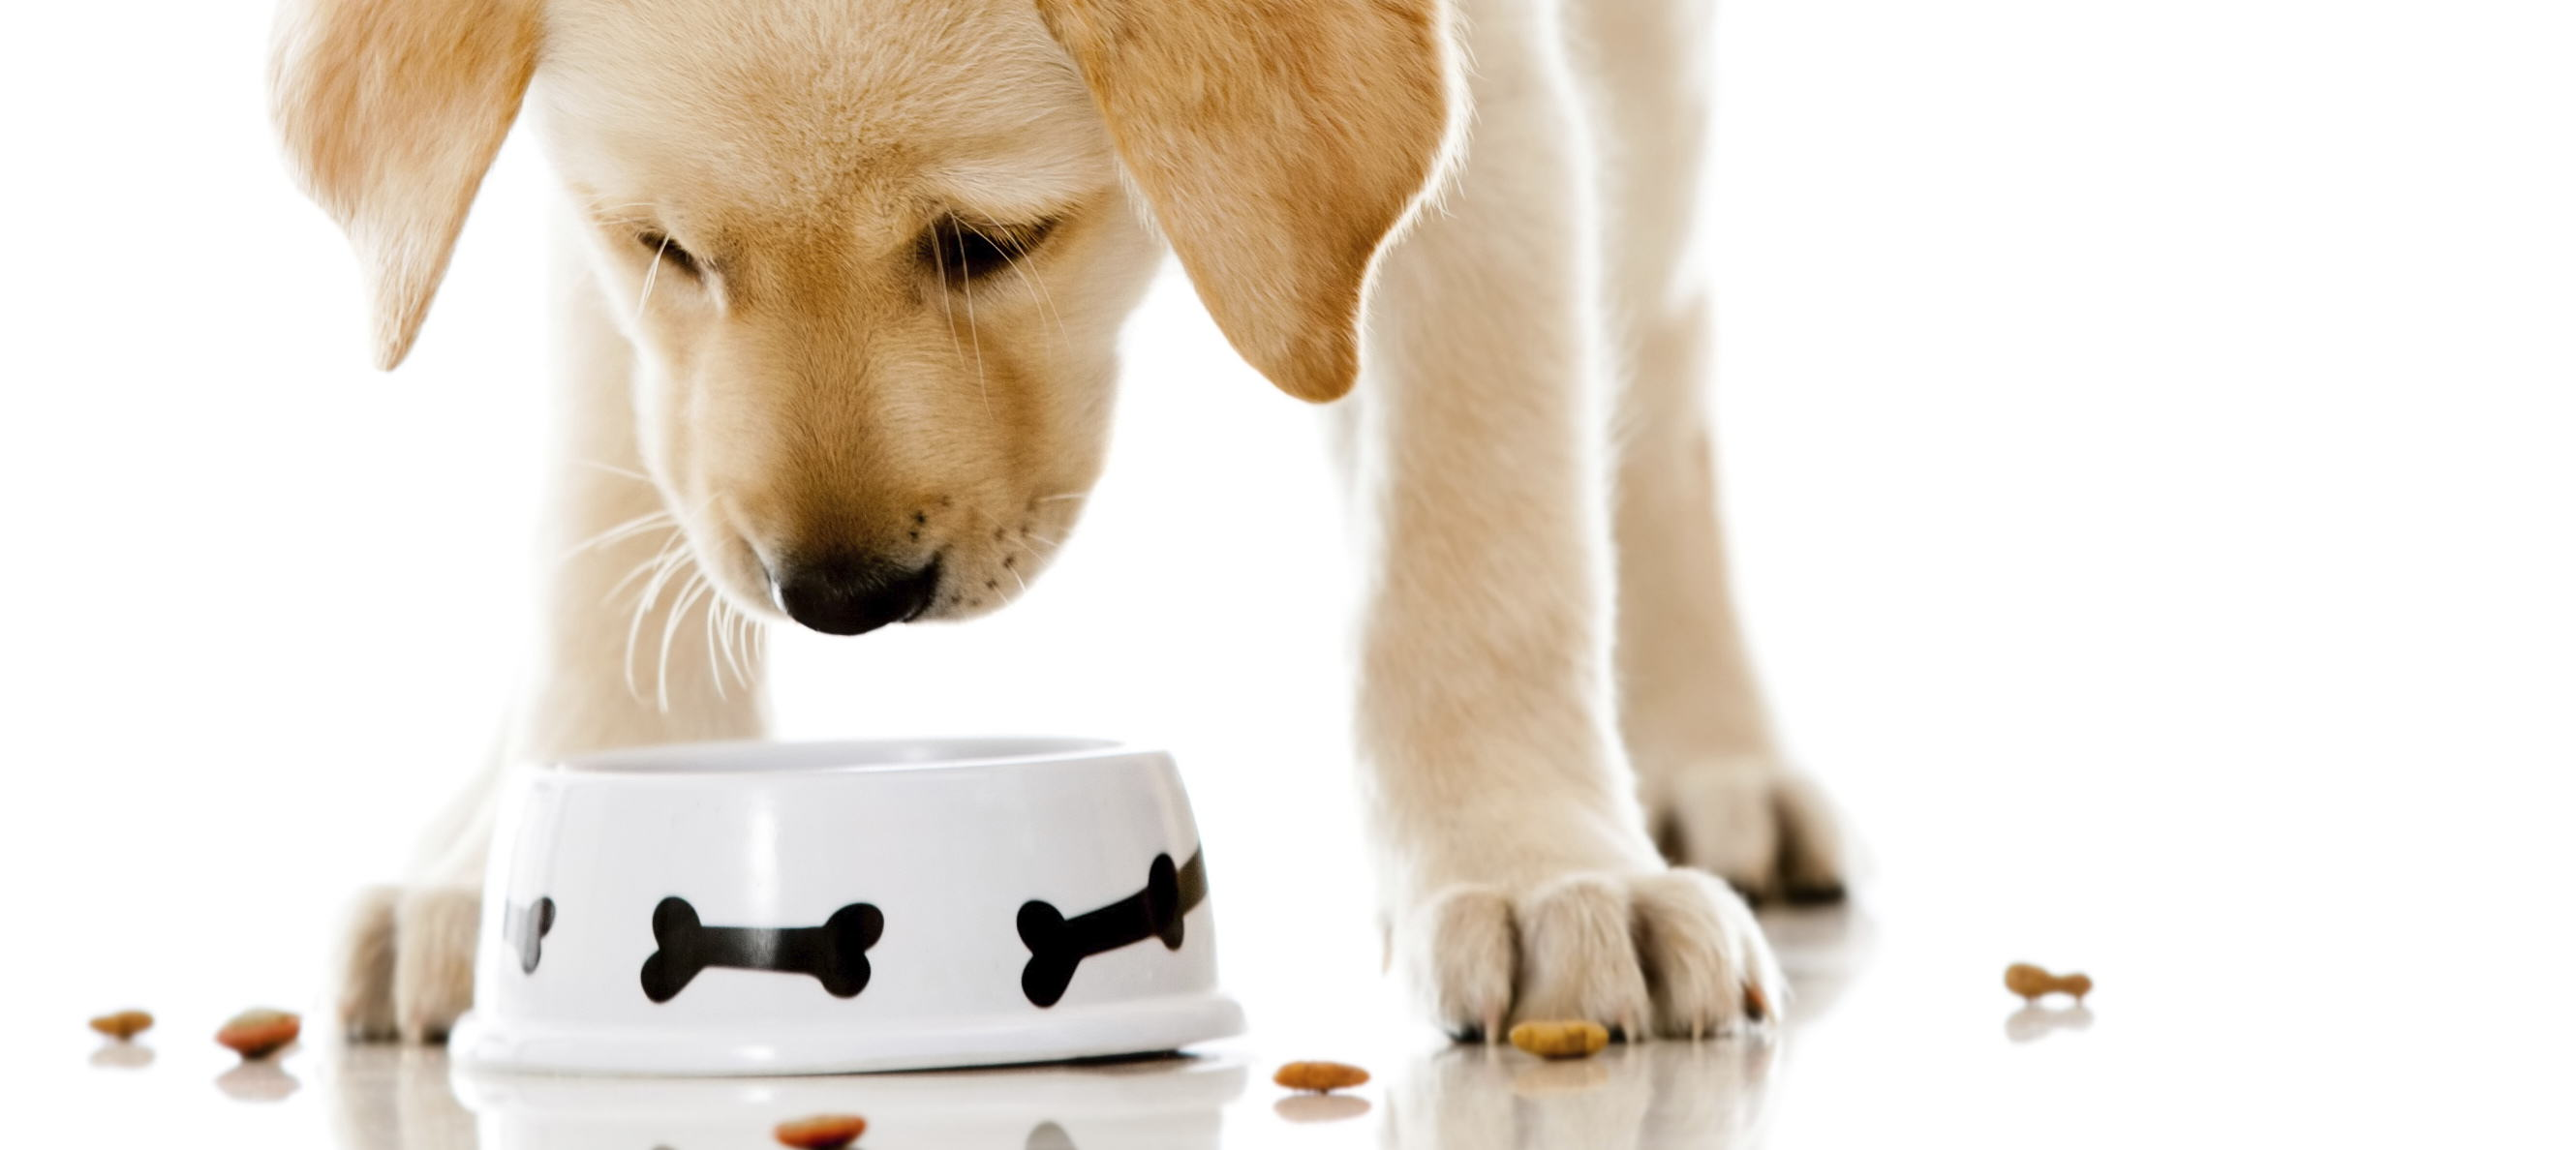 Dog food pedia Meals On Wheels Charity Apologises For Accidentally Serving Seniors Dog Food